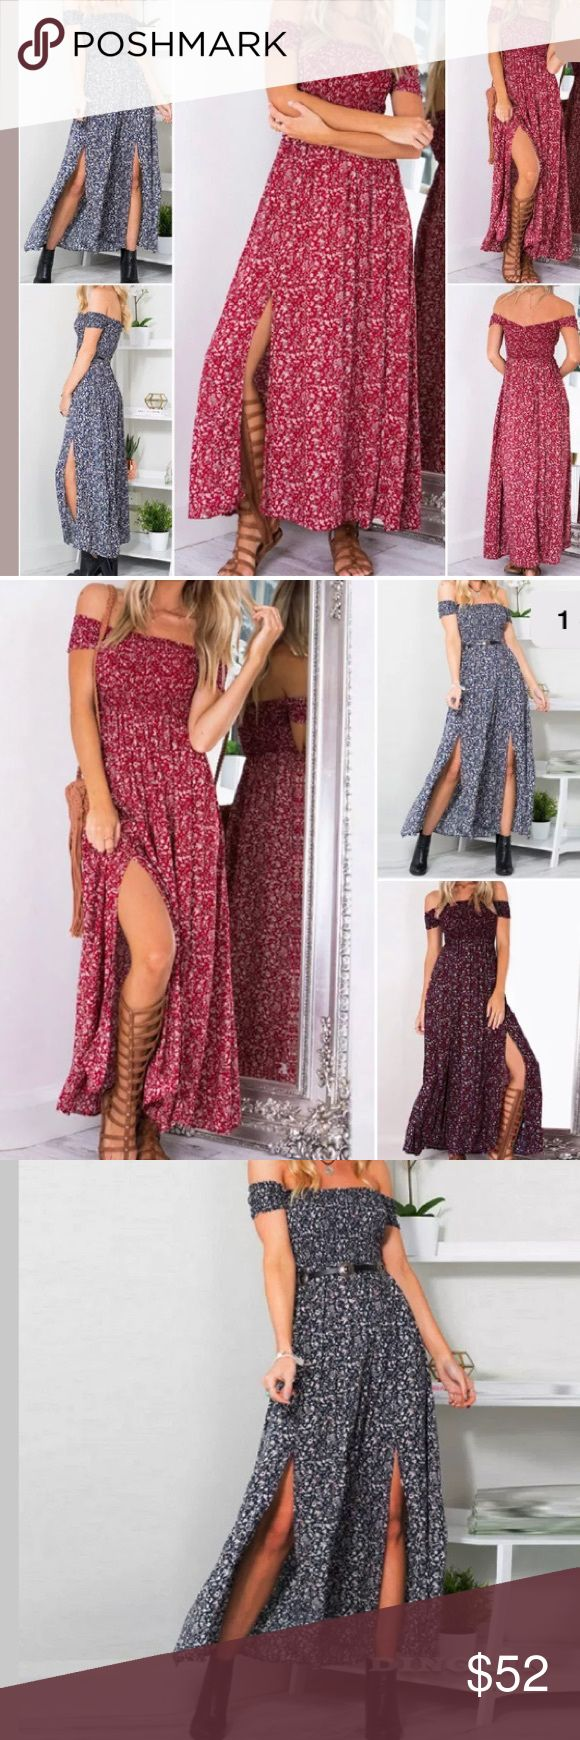 🎉 COMING SOON  IN BLUE 🎉 🎉Coming soon 🎉 Blue floral off the shoulder sun dress. Flattering empire waist. Slits on either side of front of dress. Perfect beach dress. Dresses Maxi